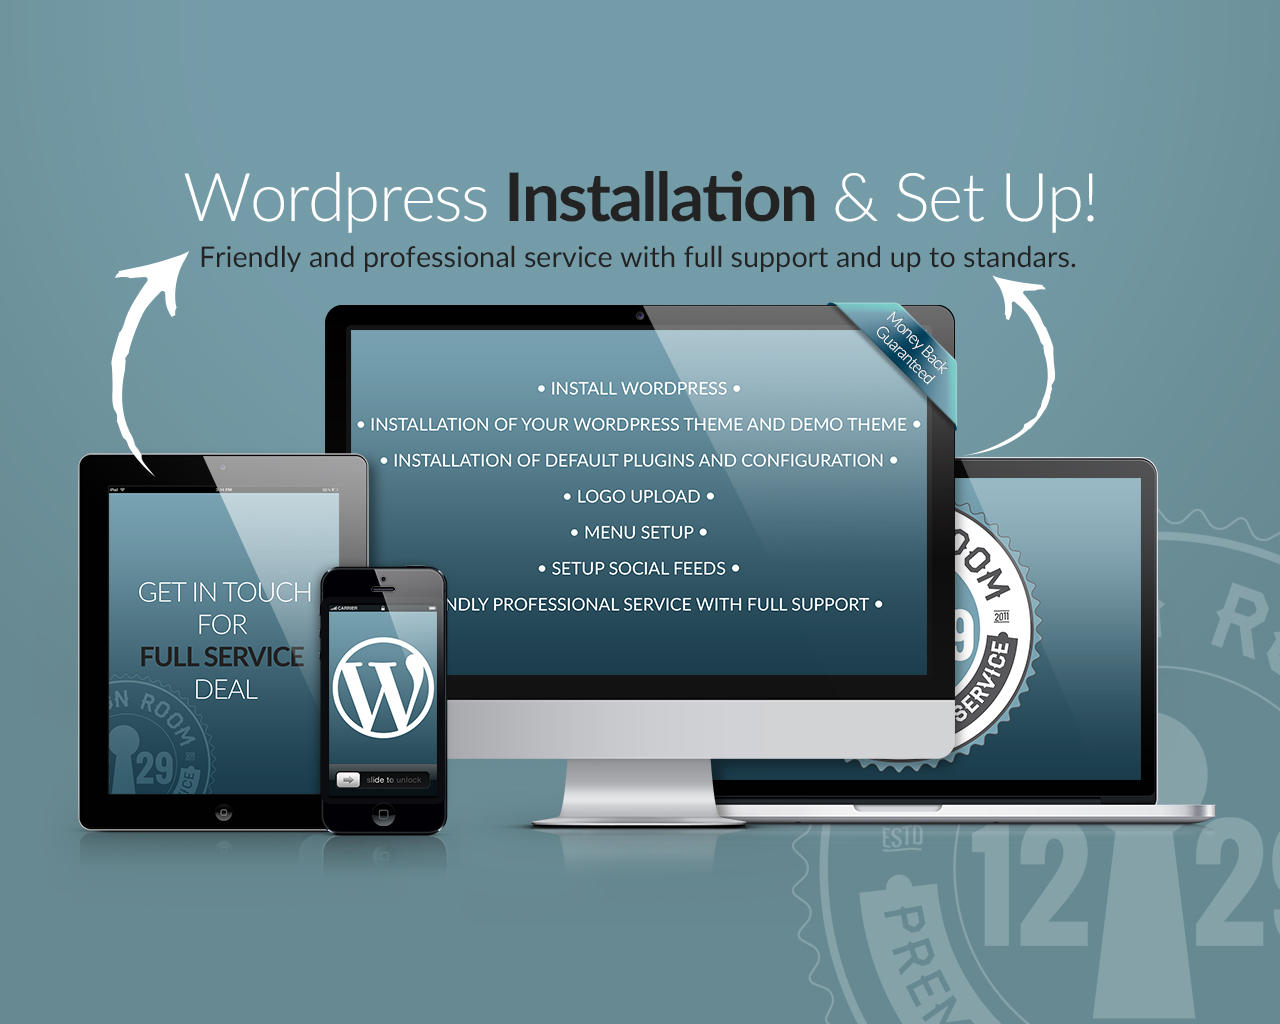 Install WordPress & Setup Theme, Demo Content, Plugins by DESIGNROOM1229 - 81024